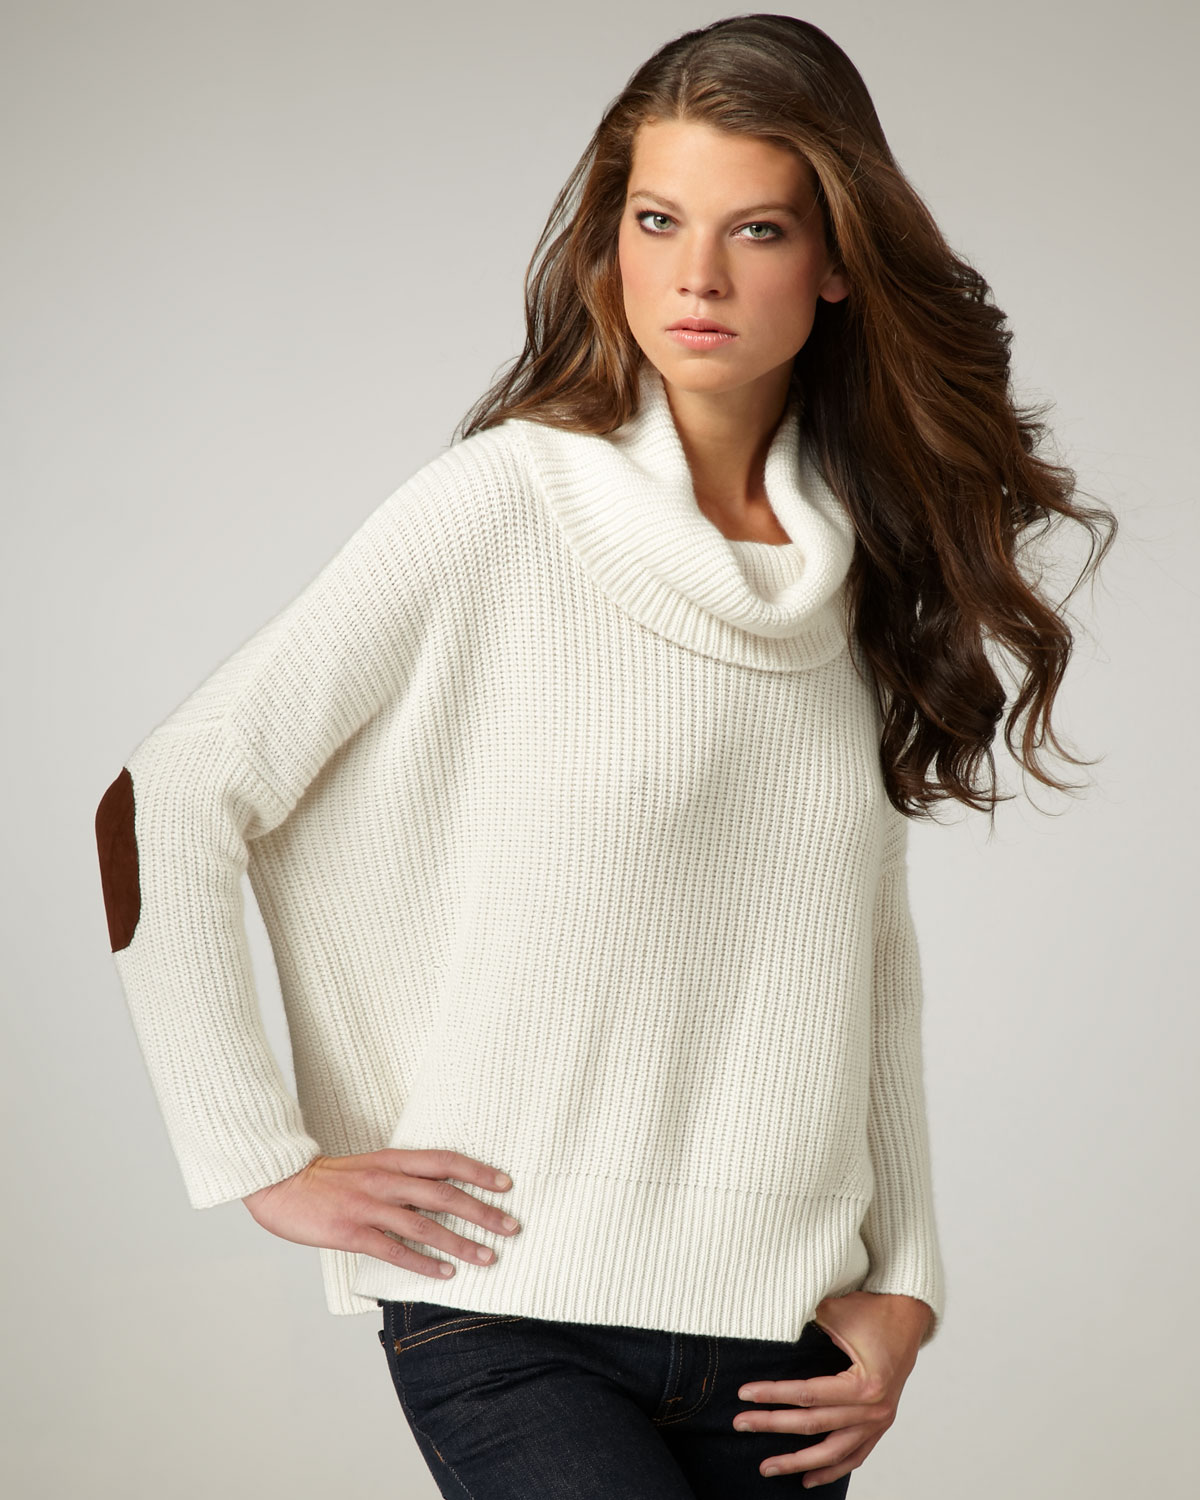 Autumn cashmere Elbow-patch Cowl-neck Sweater in White | Lyst